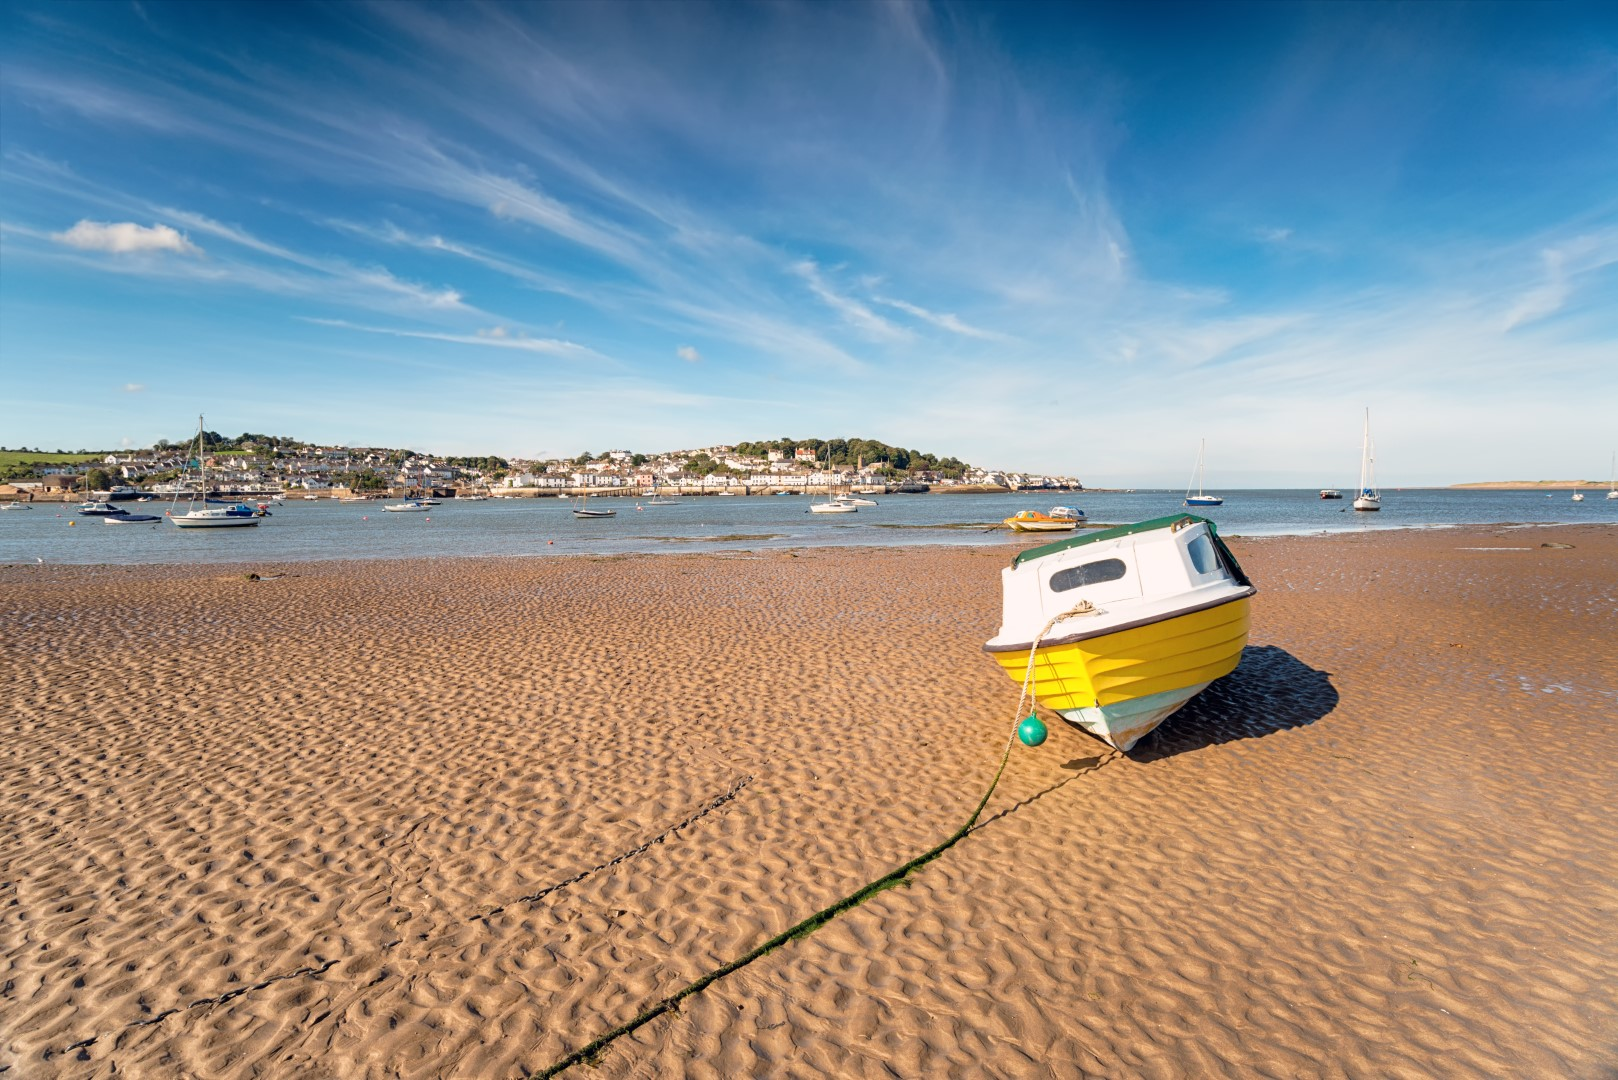 holiday cottages near instow beach